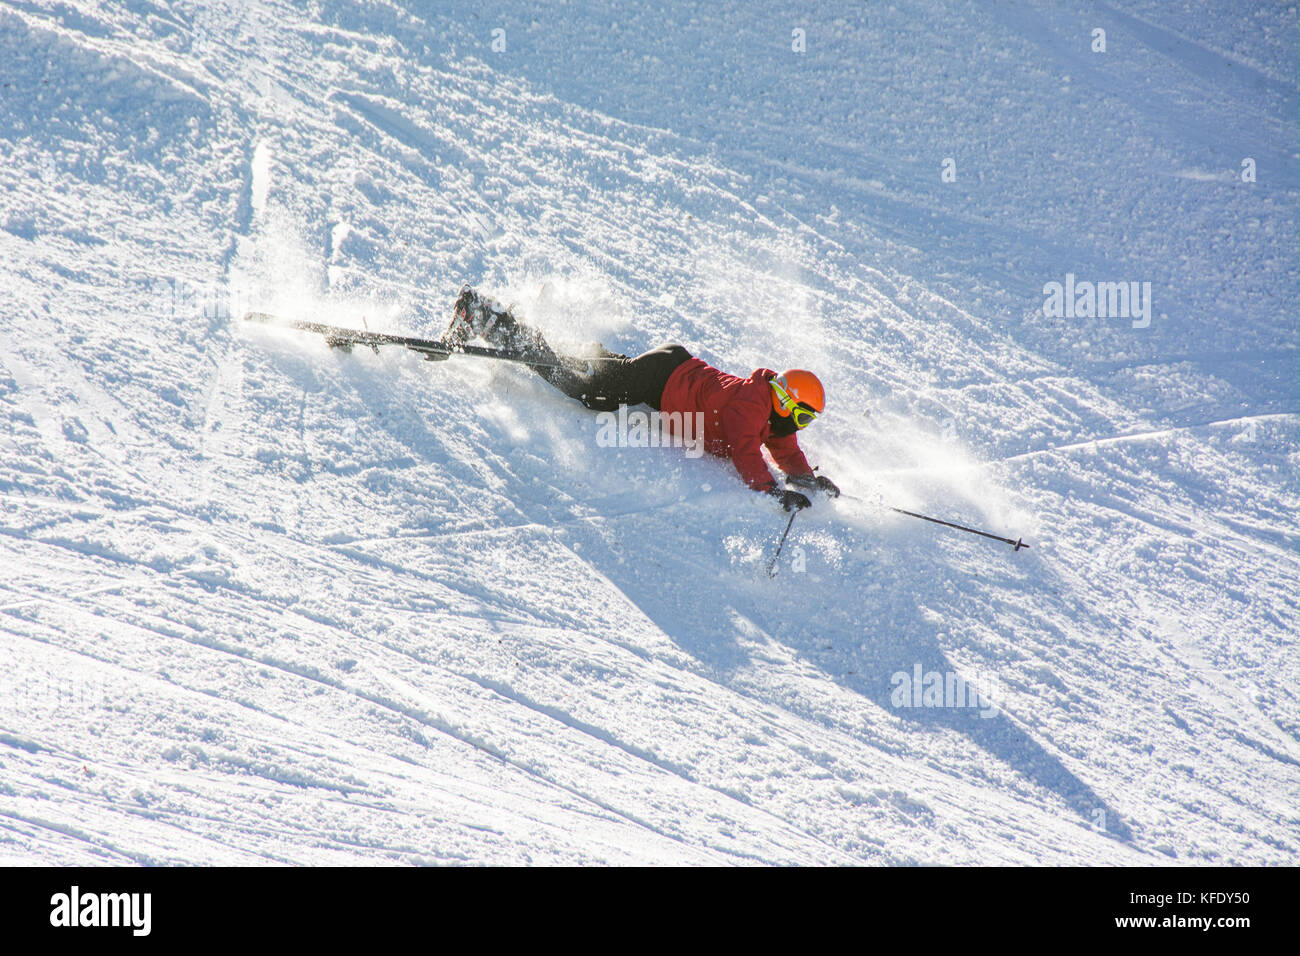 terminillo, italy - january 02, 2015: skier falling on the slope of